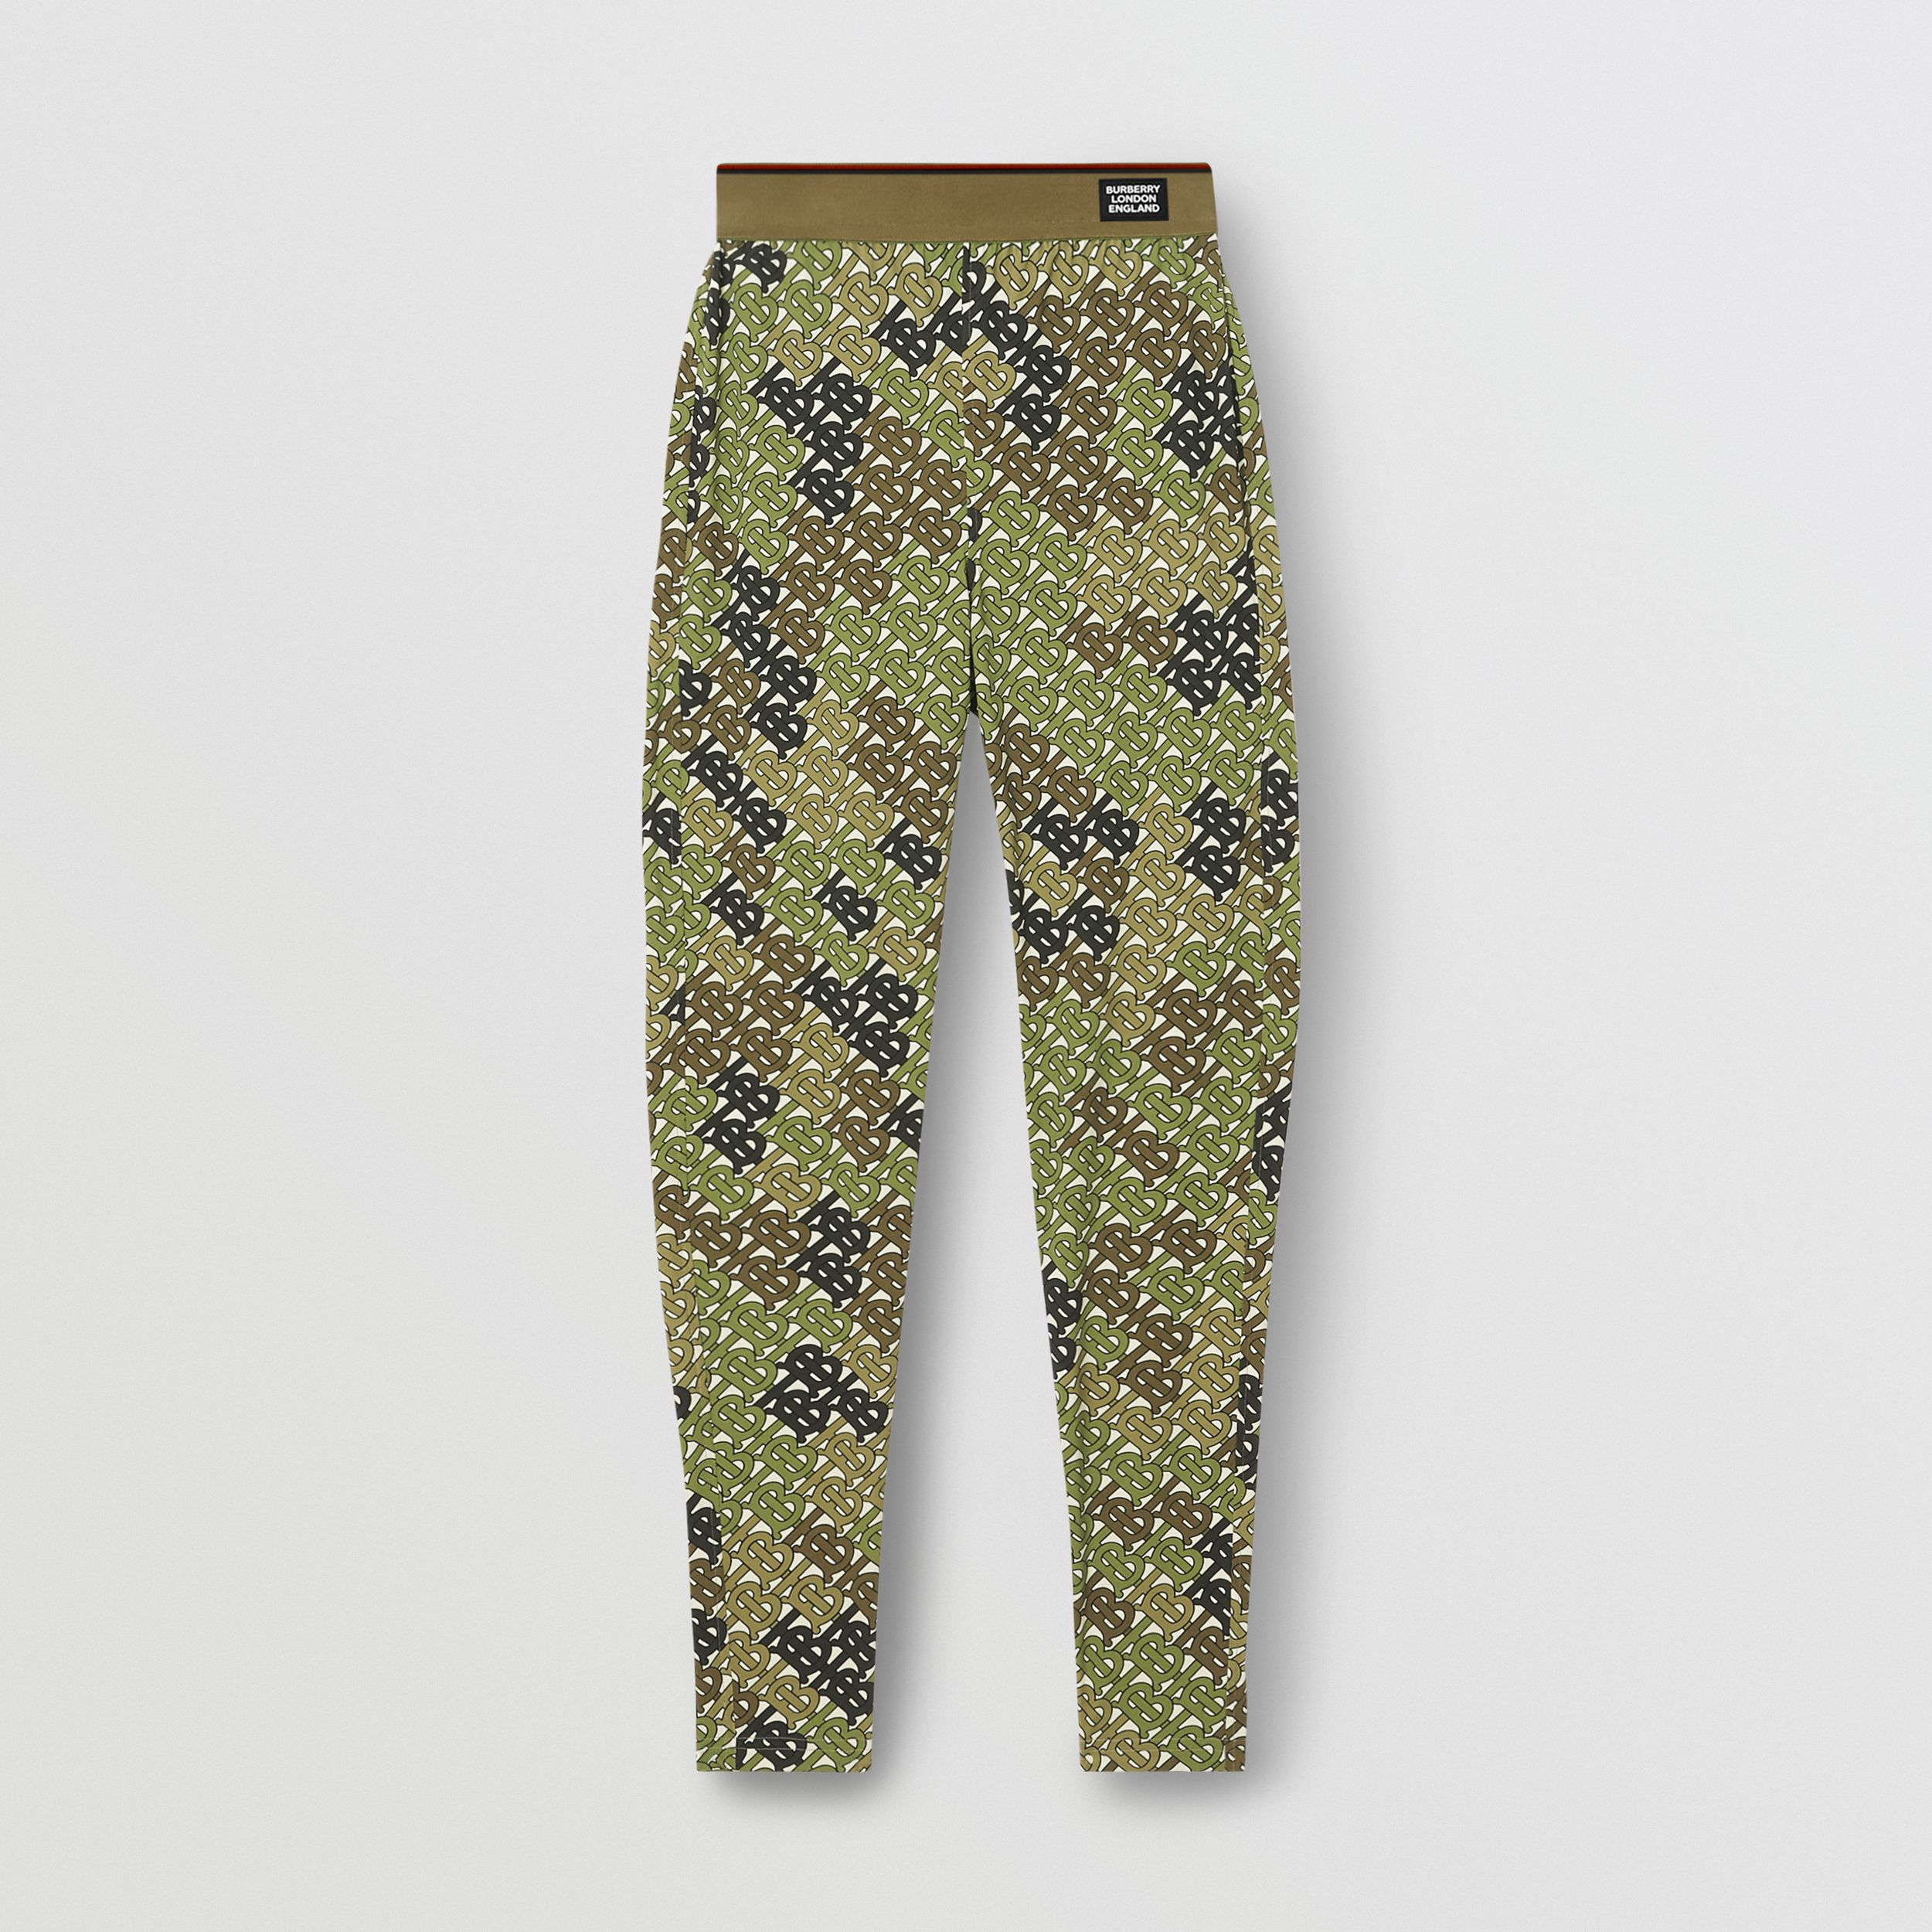 Monogram Print Stretch Jersey Leggings in Khaki Green - Women | Burberry - 4